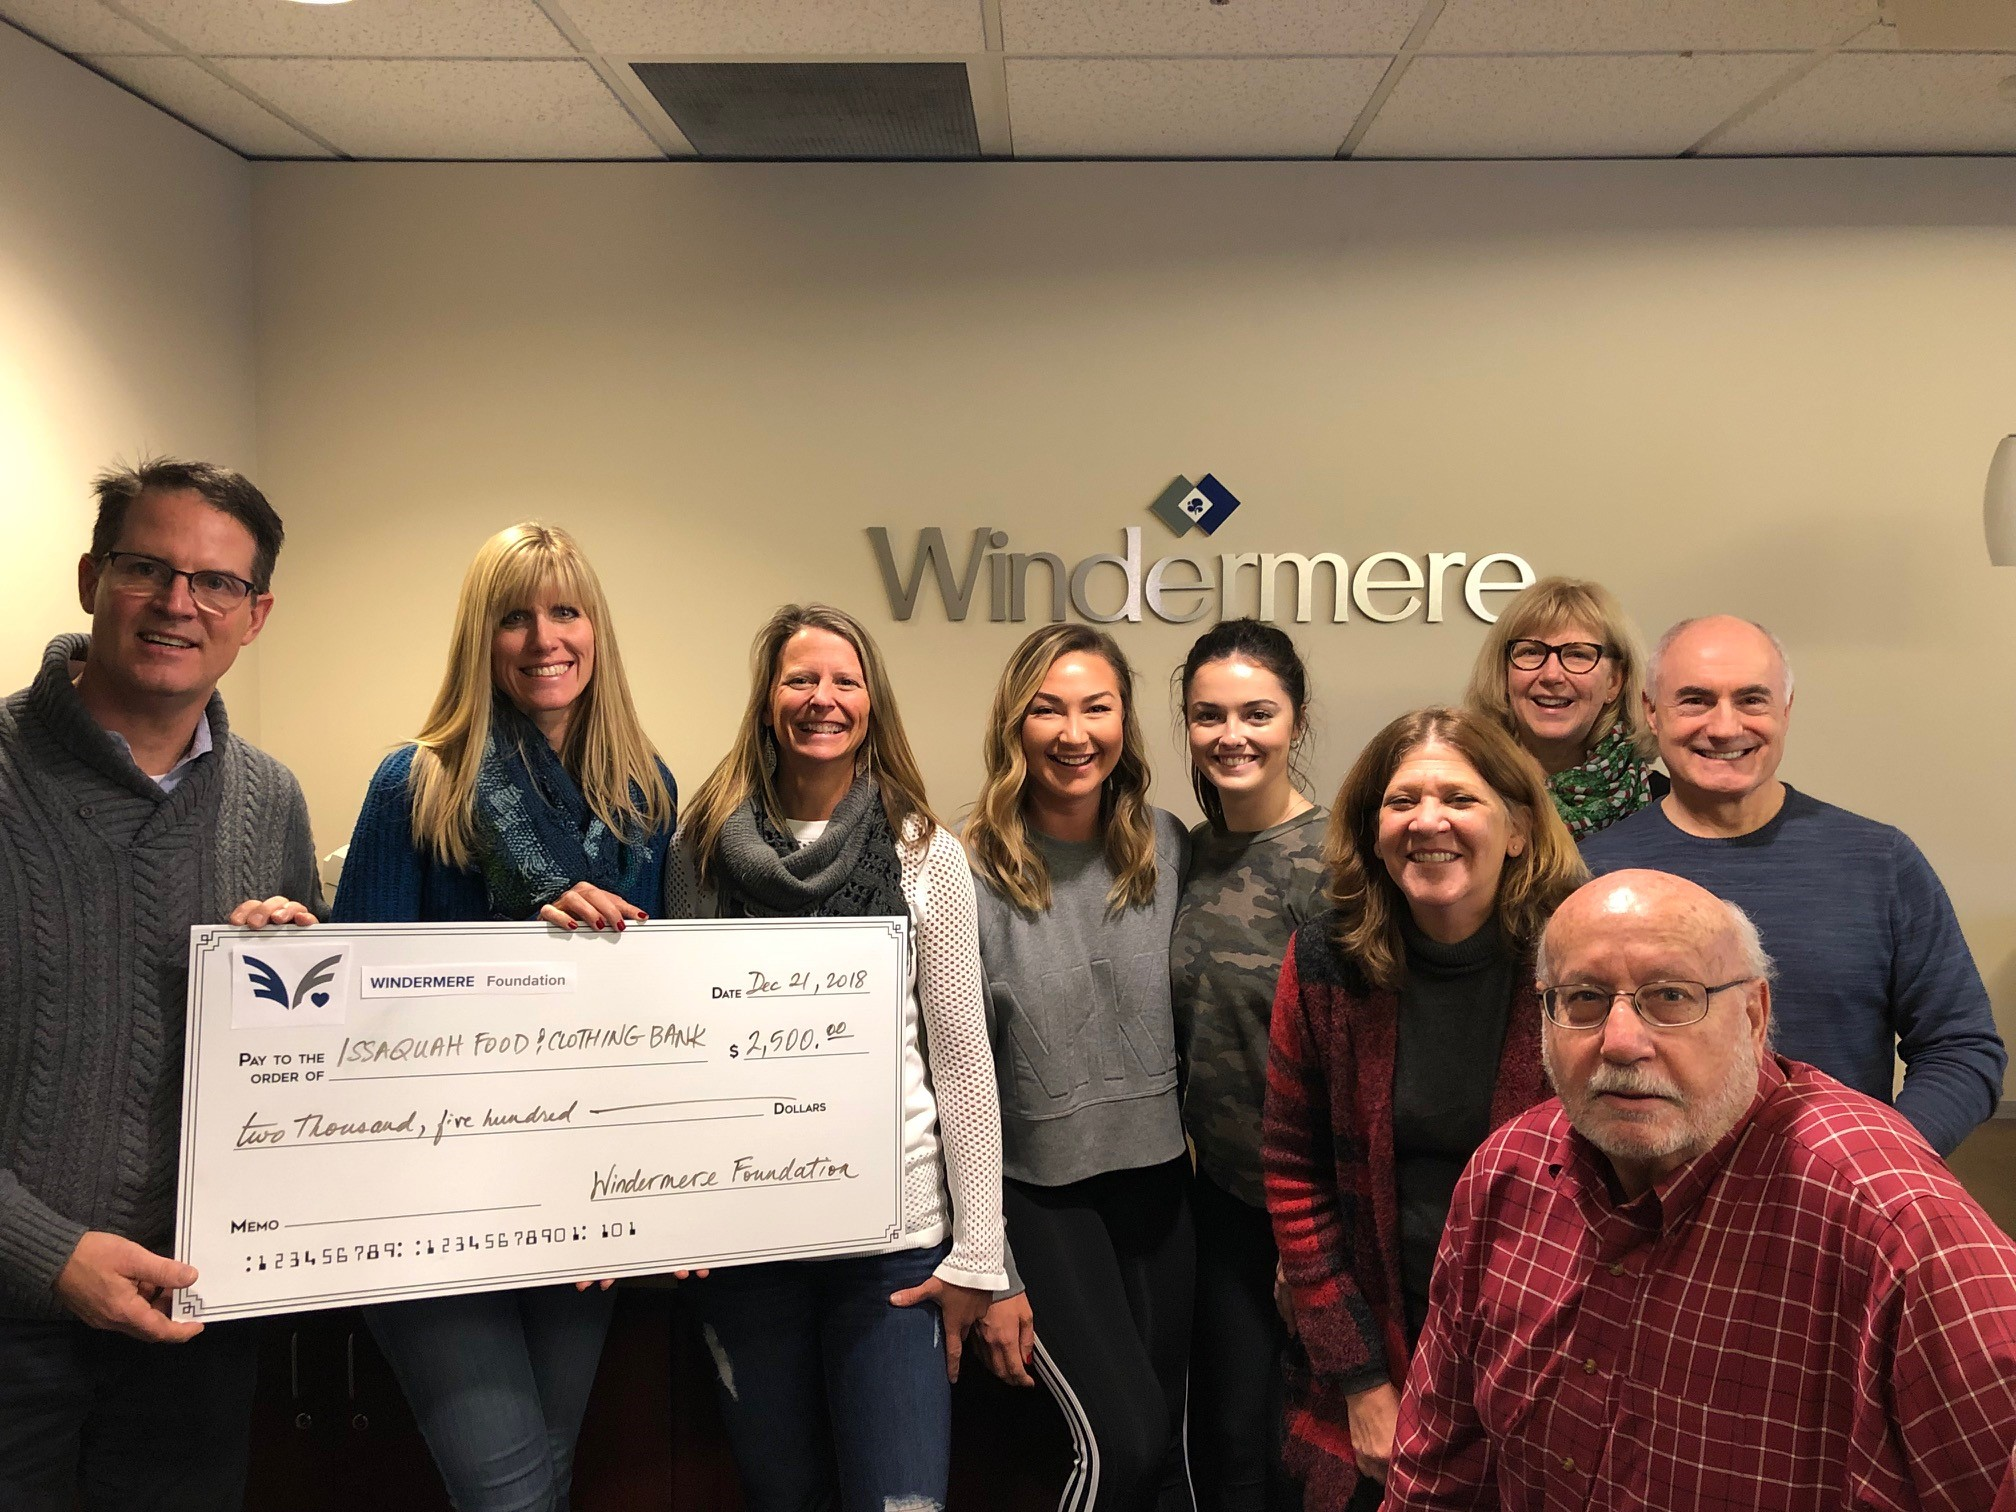 The Windermere Foundation presents the Issaquah Food Bank with a check for $2,500.00